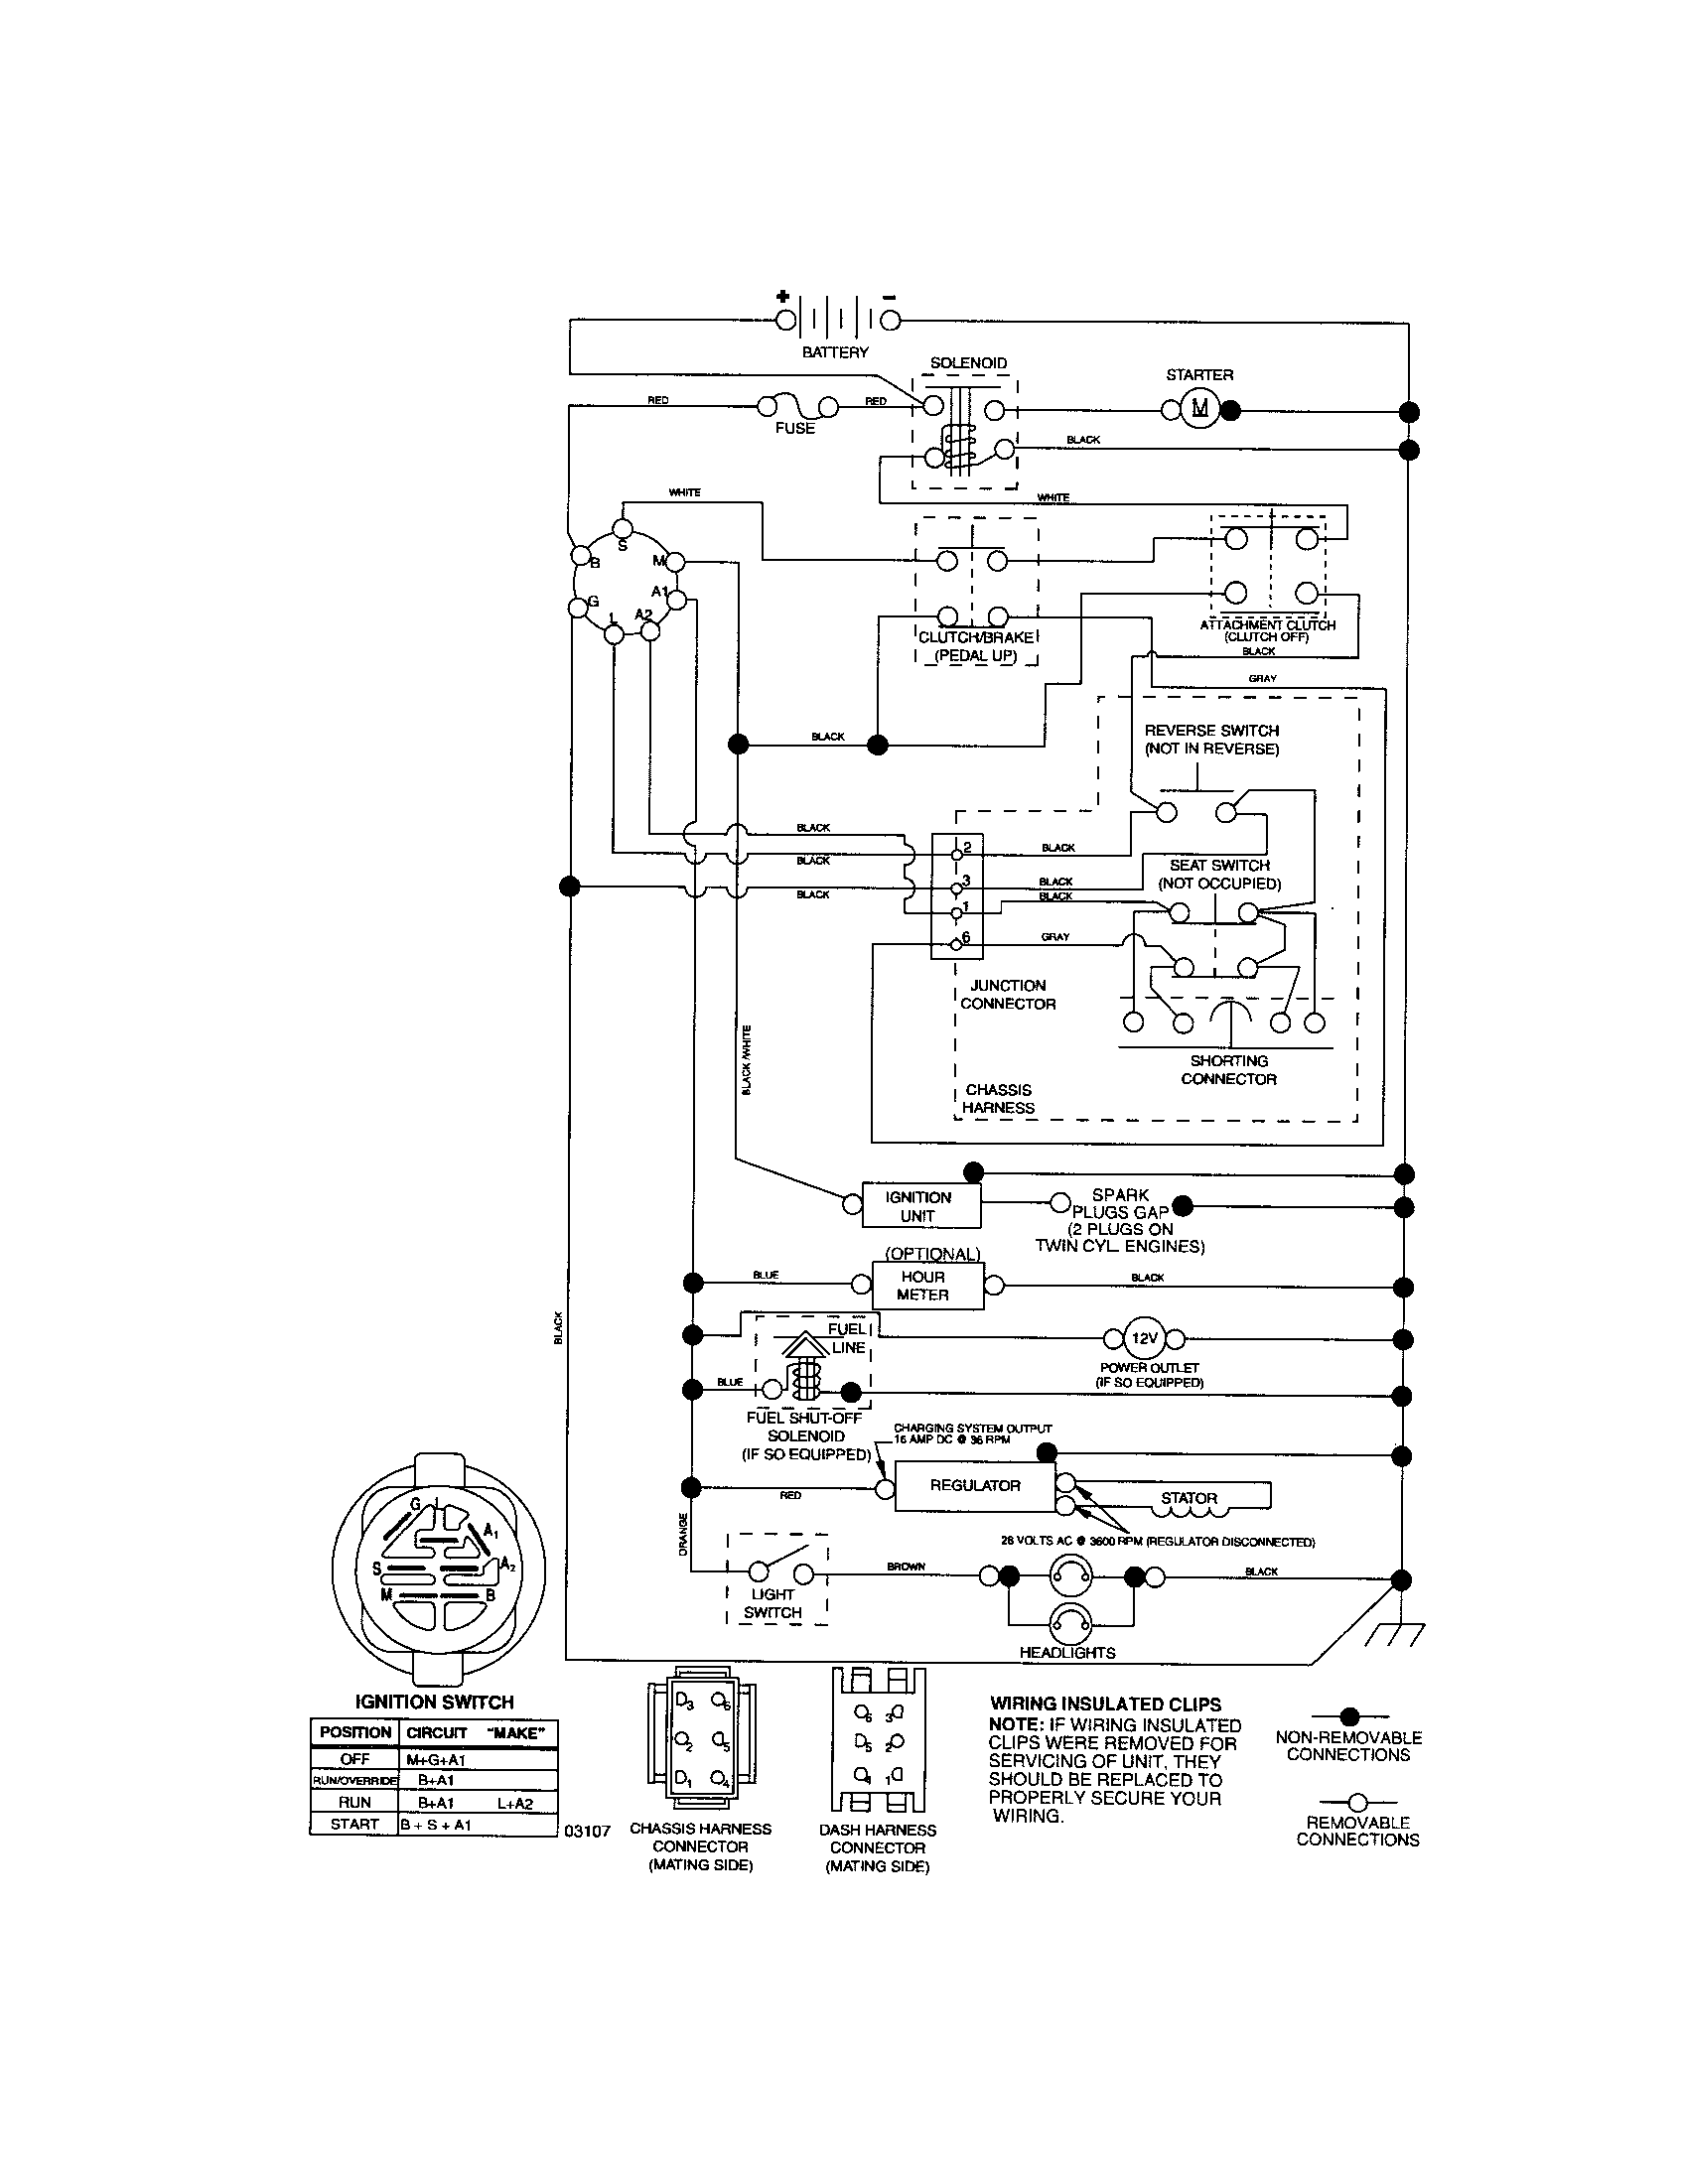 craftsman riding mower electrical diagram wiring diagram craftsman 20 HP Craftsman Riding Mower Electrical Diagram craftsman riding mower electrical diagram wiring diagram craftsman riding lawn mower i need one for